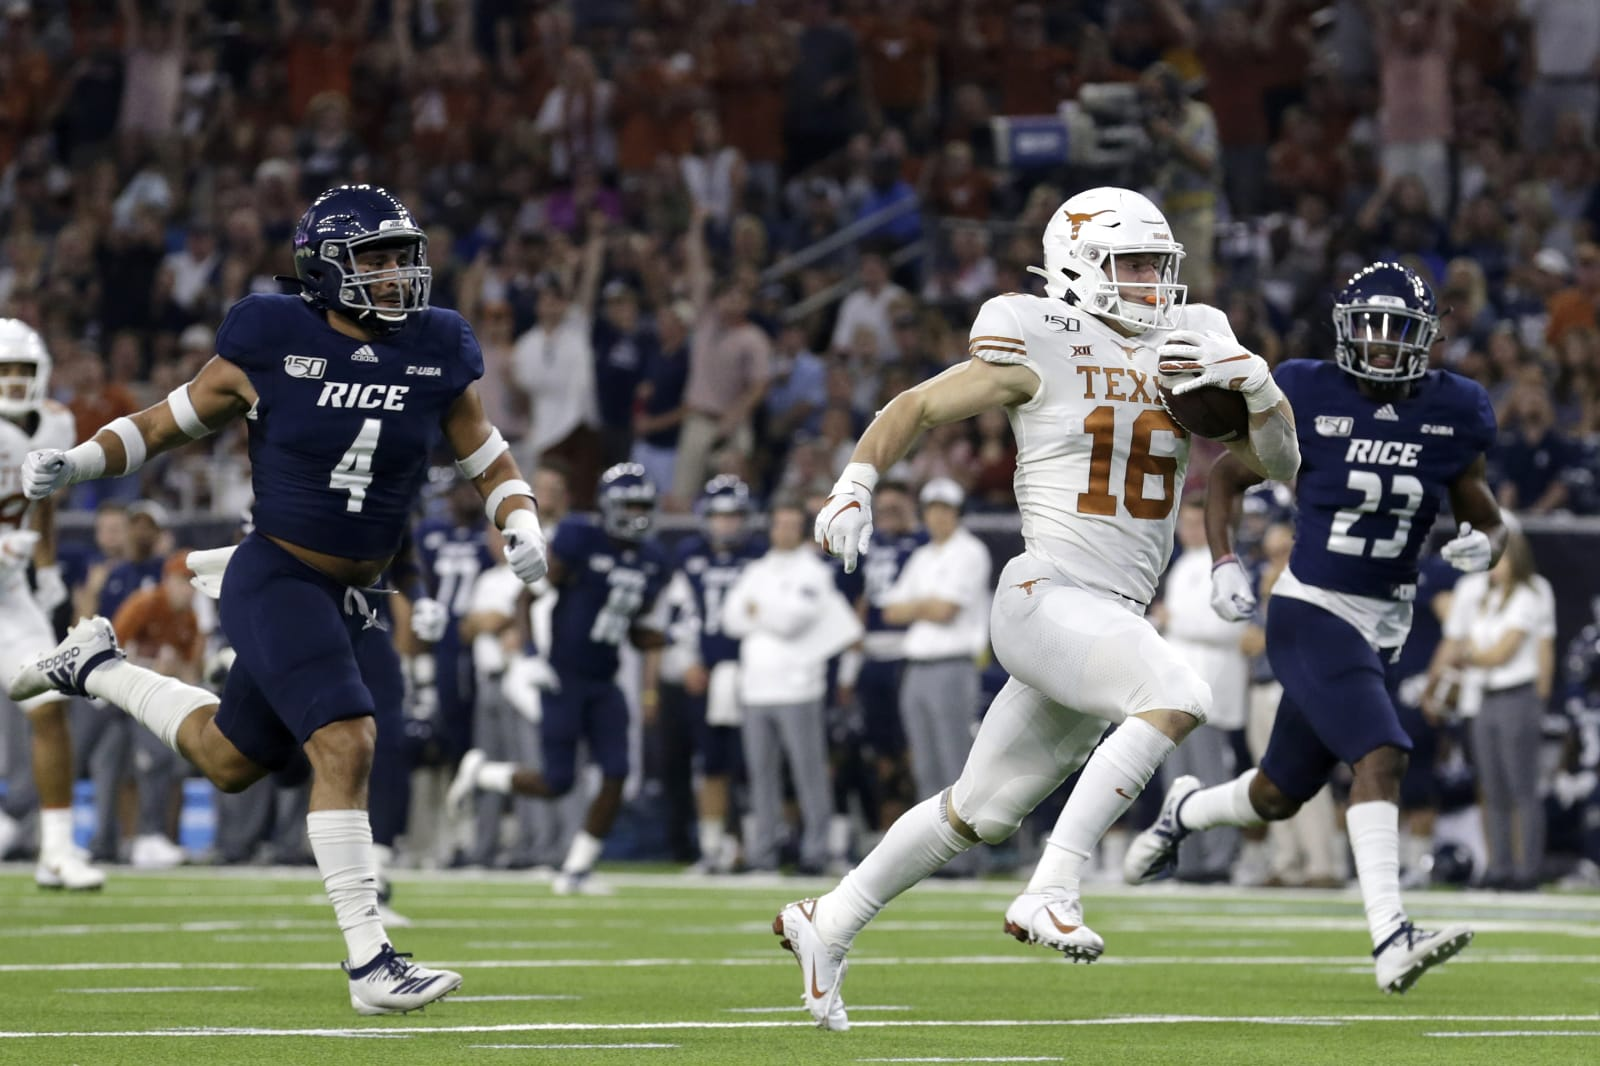 Jake Smith, Texas Football